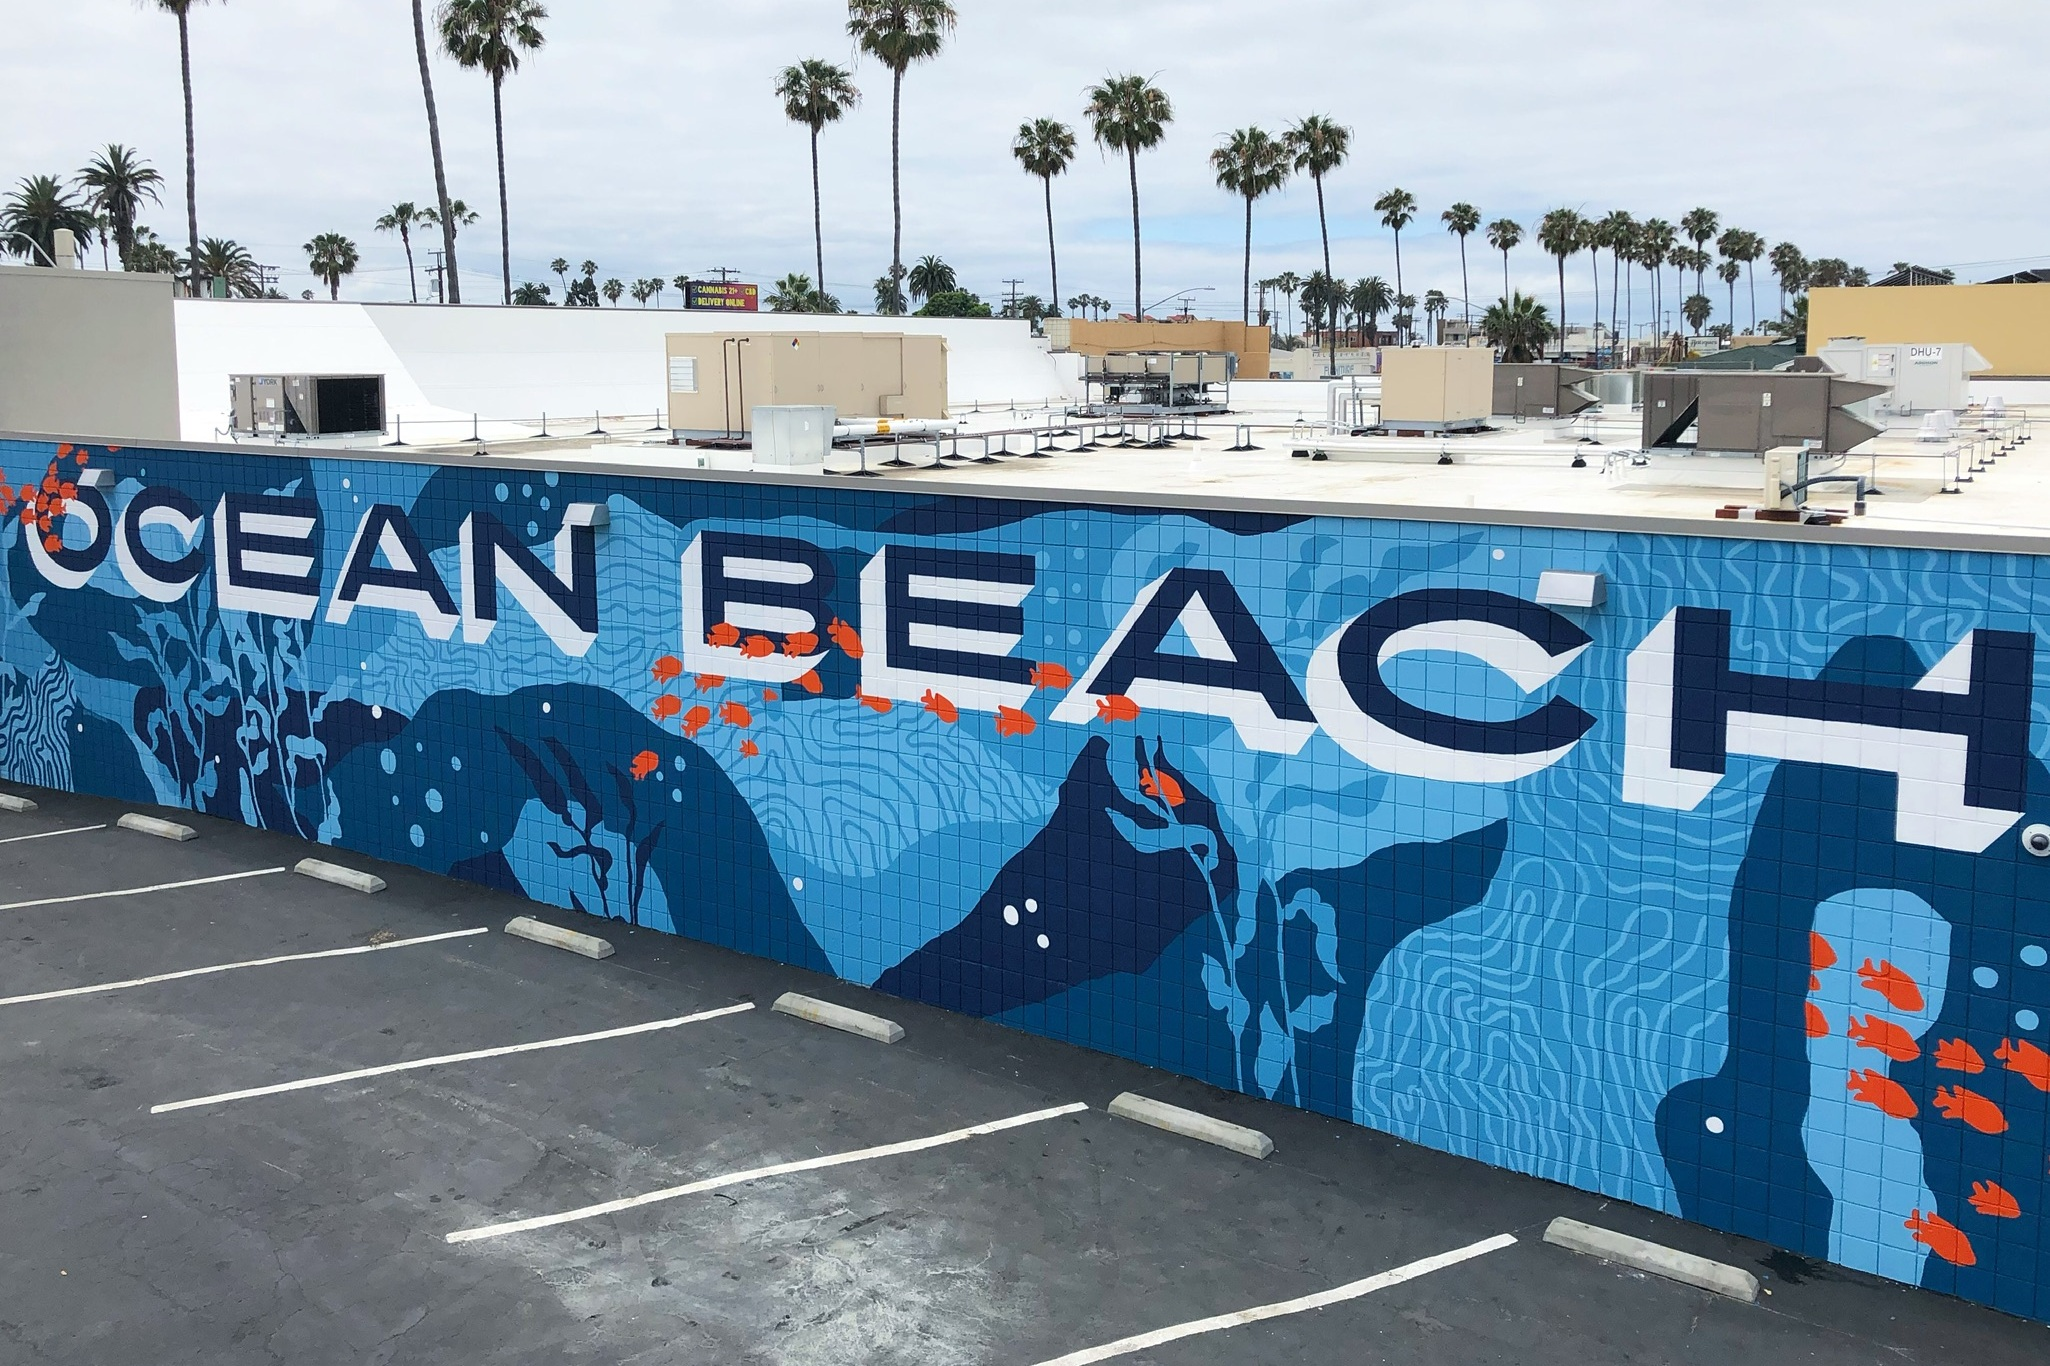 Ocean Beach San Diego Target Mural with Underwater Fish and Reef Formations